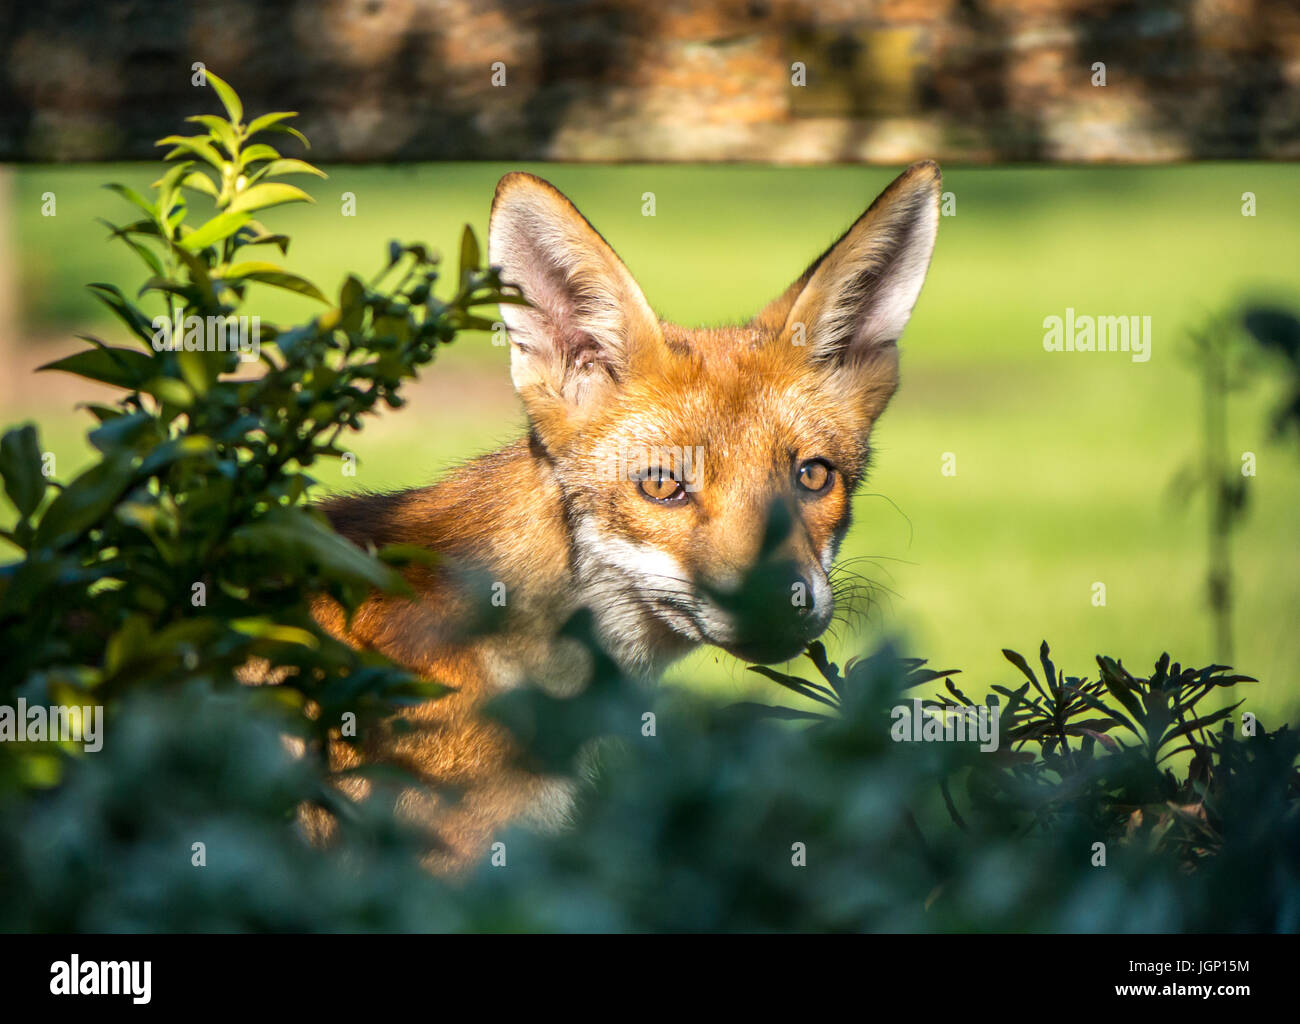 close-up-of-an-urban-fox-in-a-london-gar